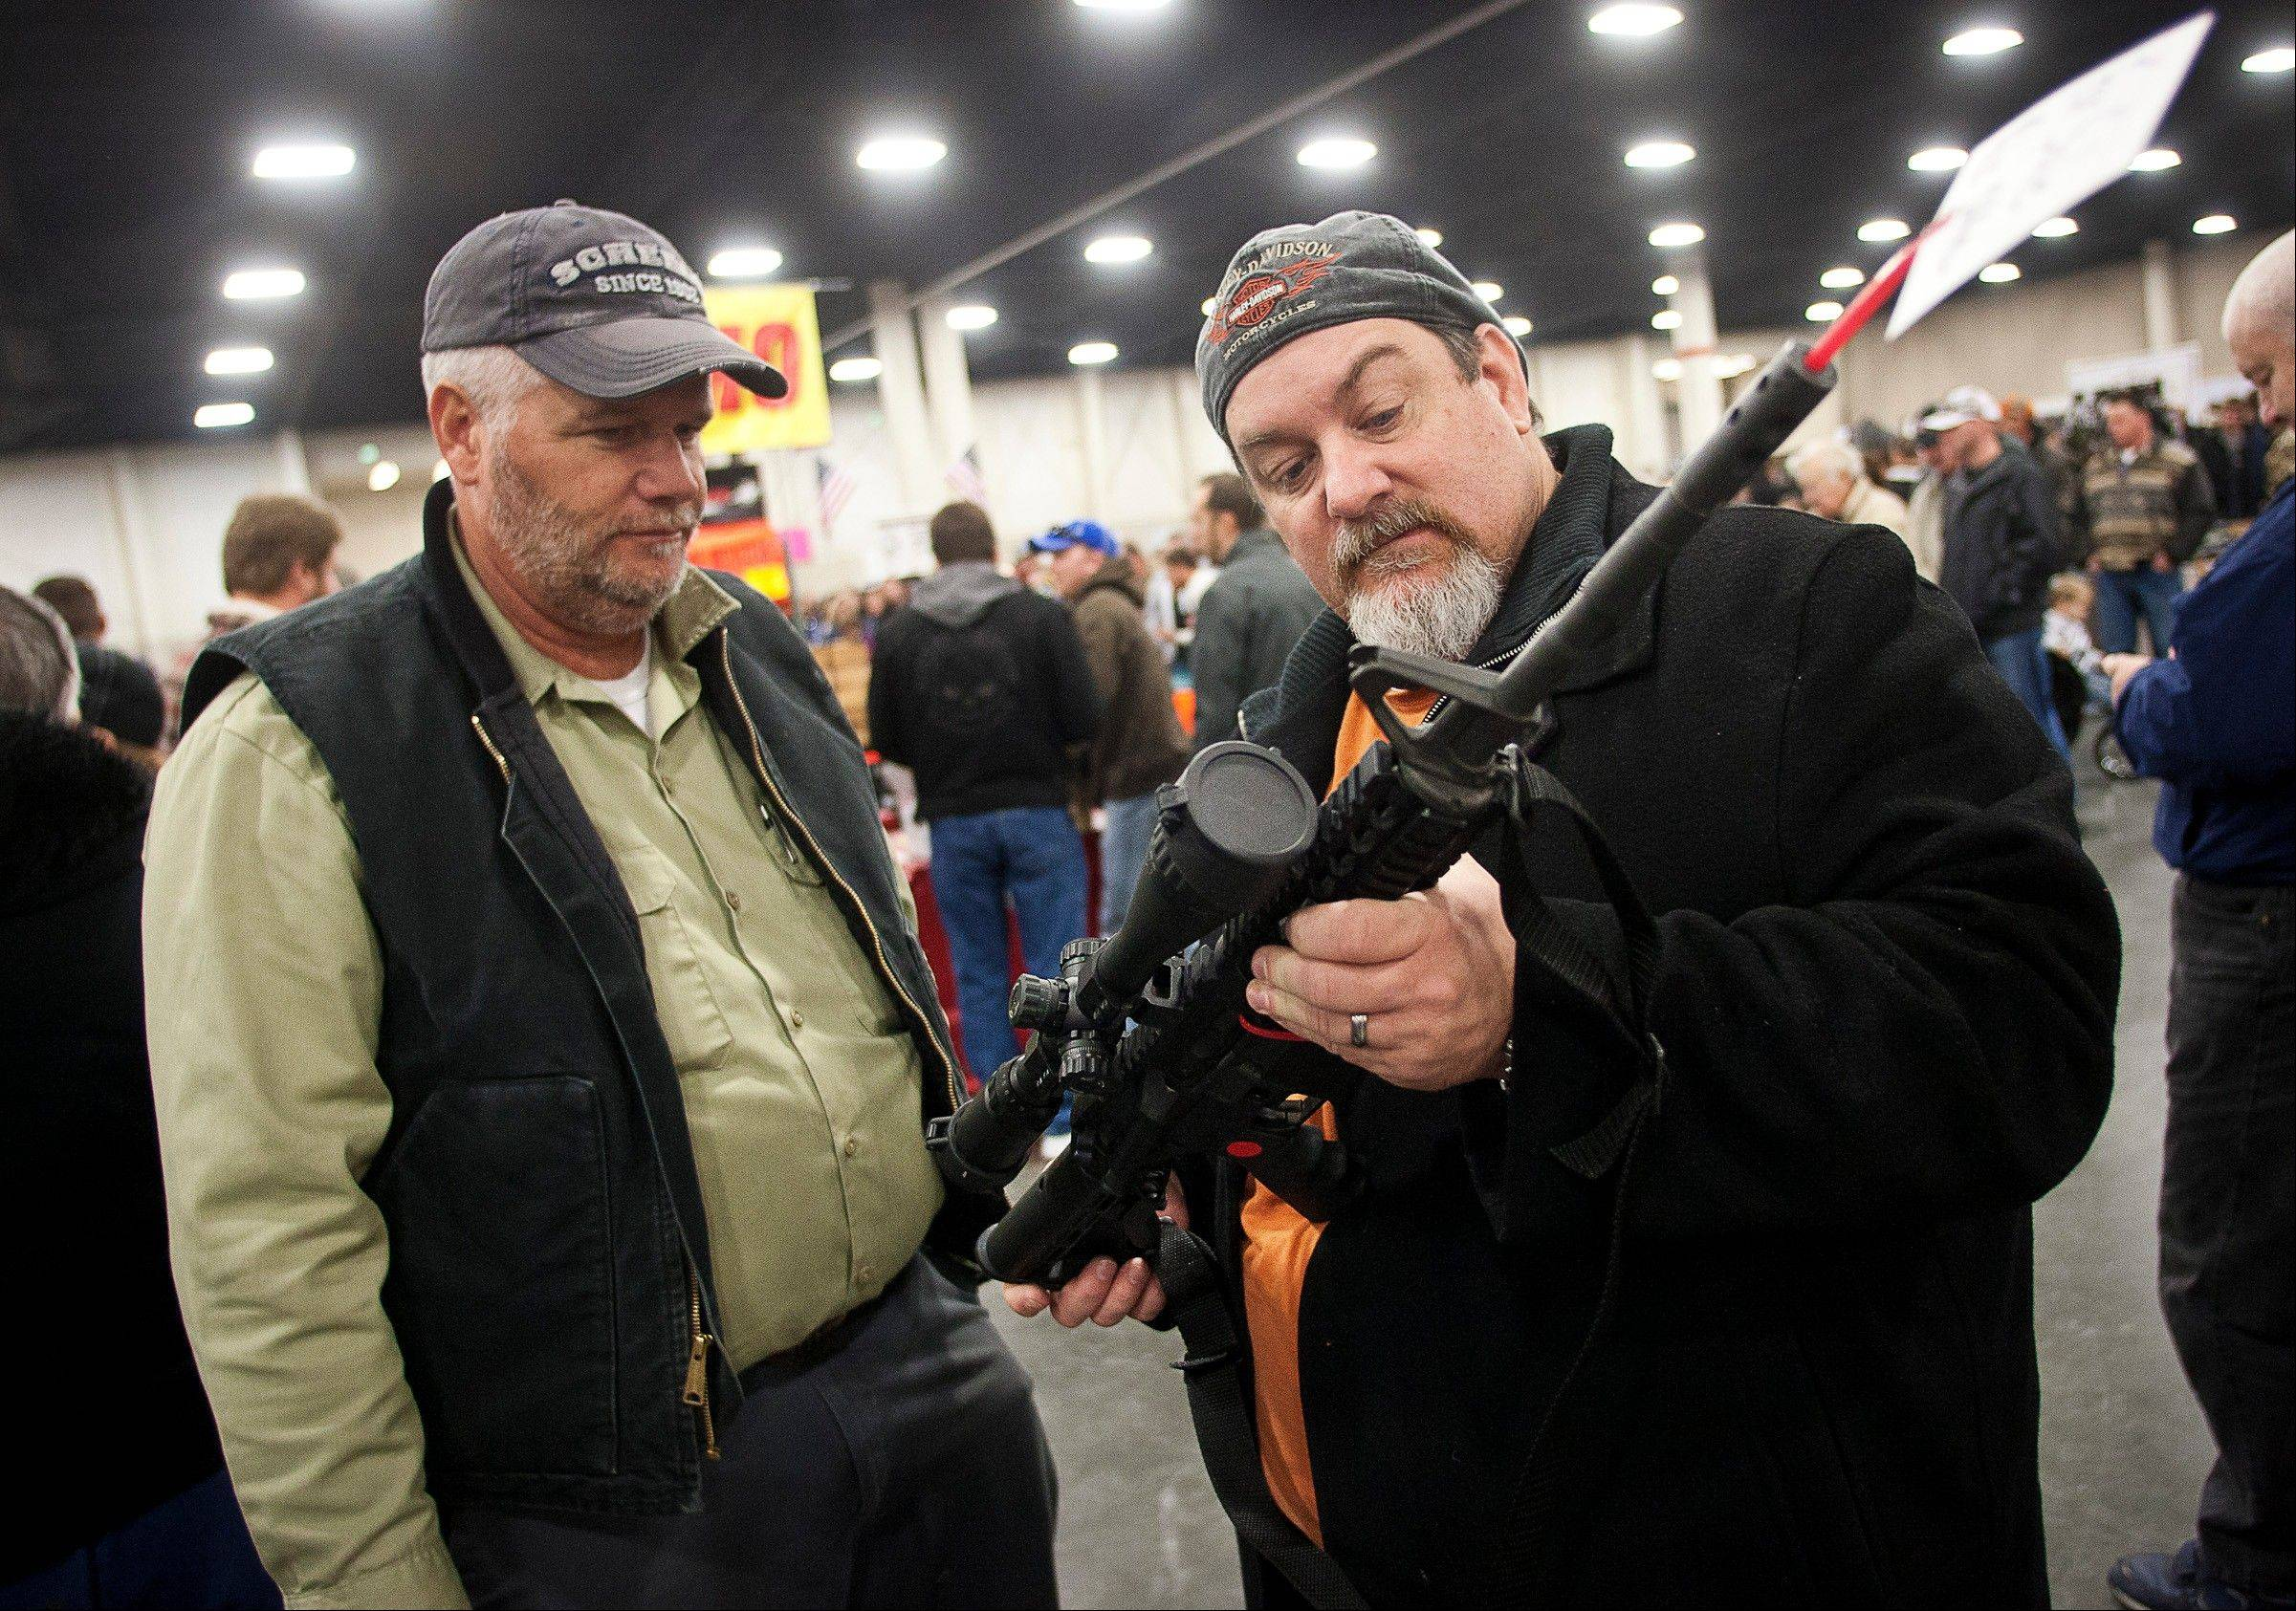 Gun owners discuss a potential sale of an AR-15, one of the most popular and controversial weapons, during the 2013 Rocky Mountain Gun Show at the South Towne Expo Center in Sandy, Utah Saturday. In spite of the recent school shooting in Newtown, Conn., gun enthusiasts packed in by the hundreds to purchase weapons and ammunition.